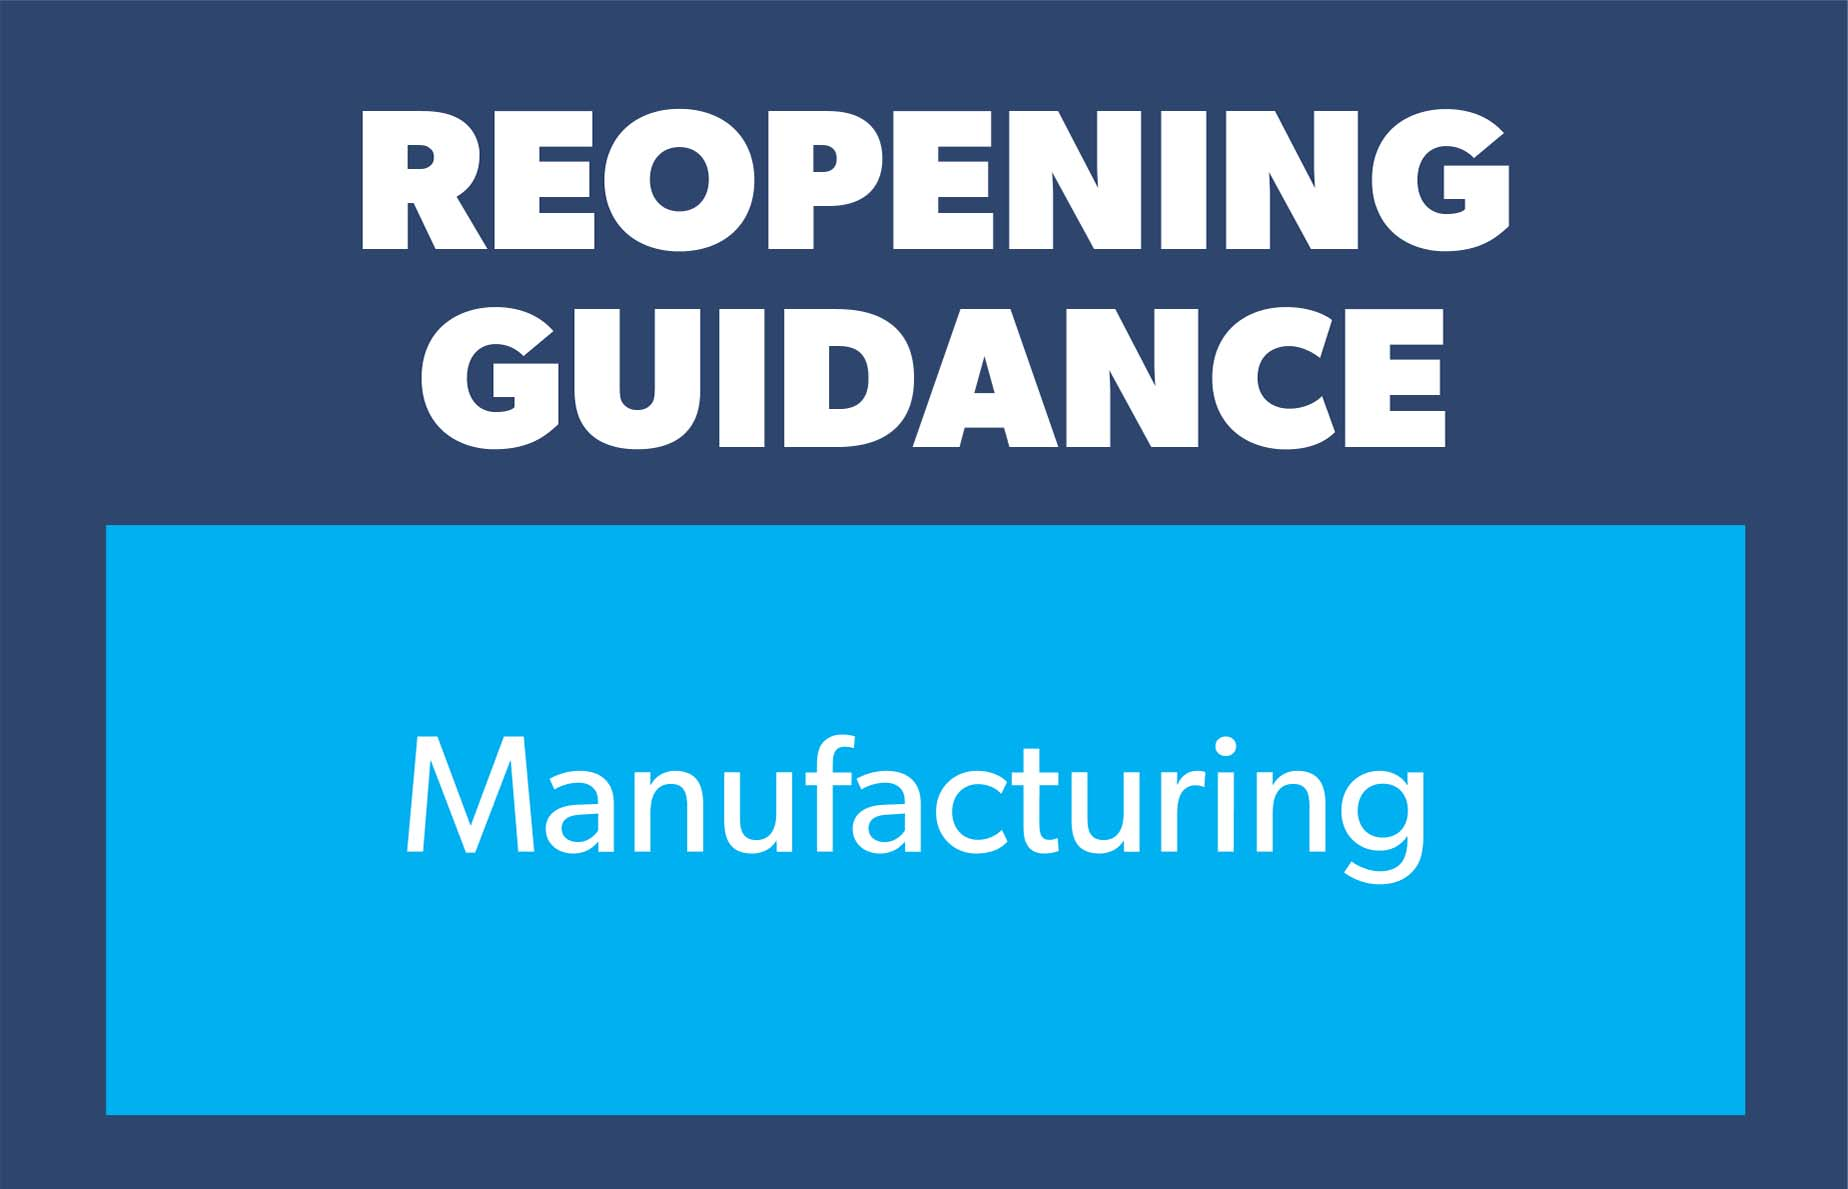 Guidance manufacturing